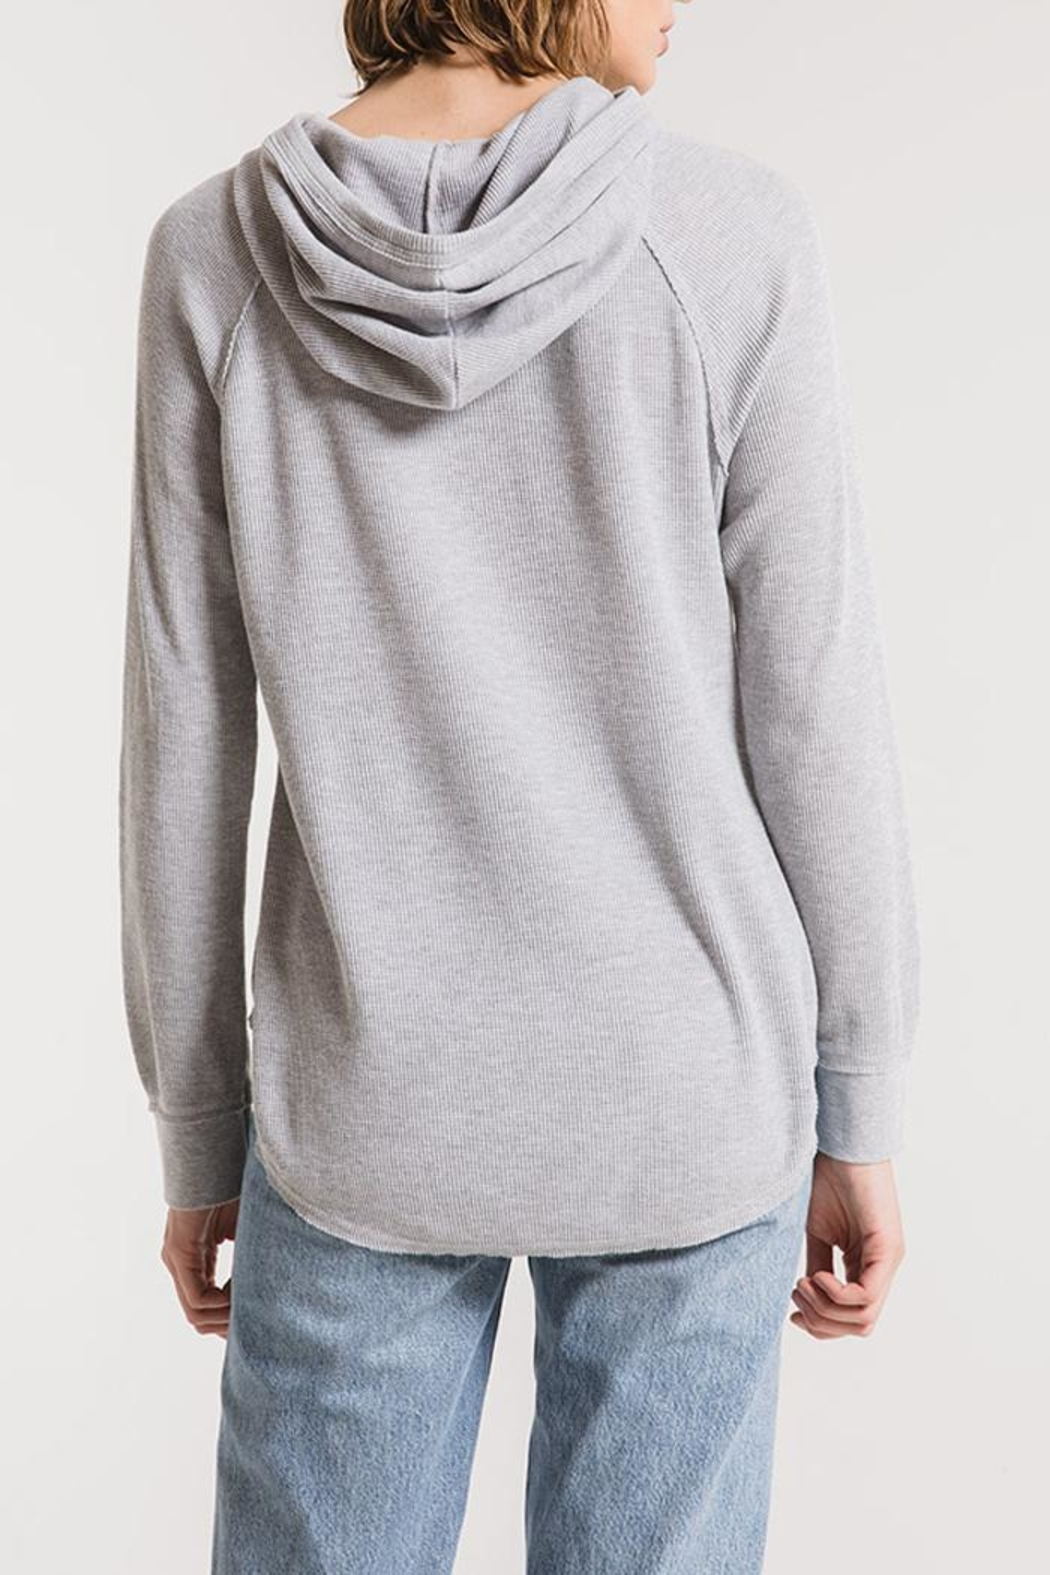 z supply Thermal Hooded Tunic - Back Cropped Image